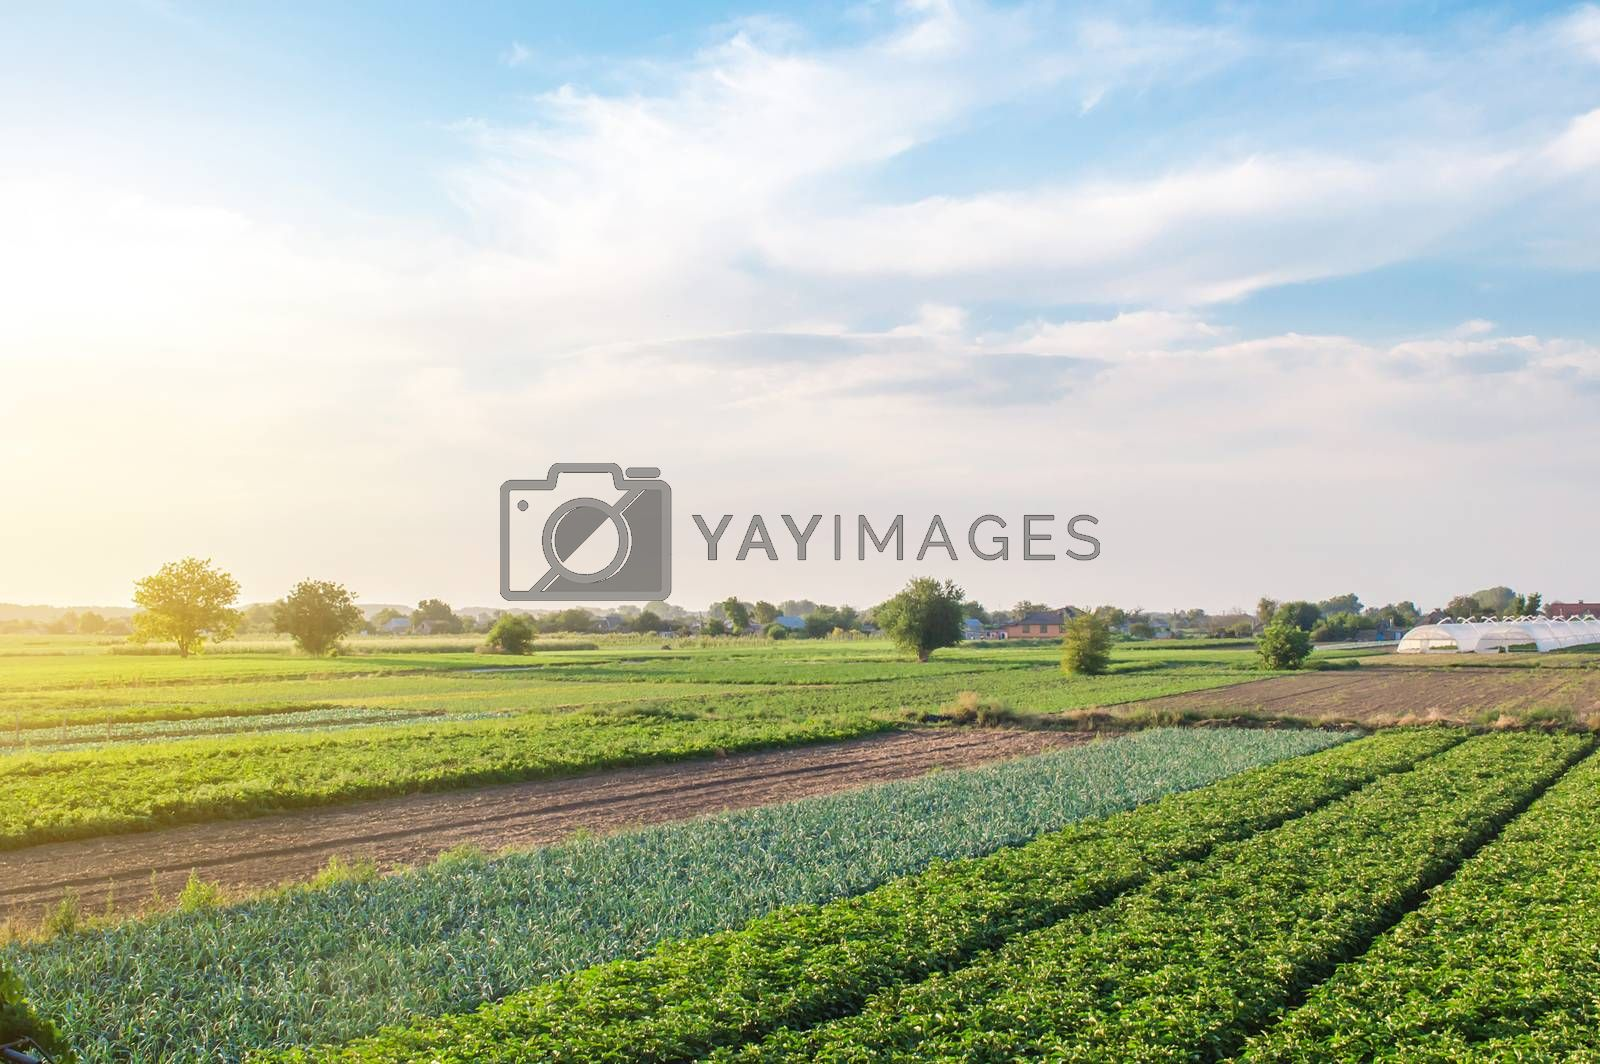 Wonderful european summer countryside landscape of farm fields. Agroindustry and agribusiness. Aerial view of a beautiful countryside farmland. Man-made cultivated environment. Organic farming